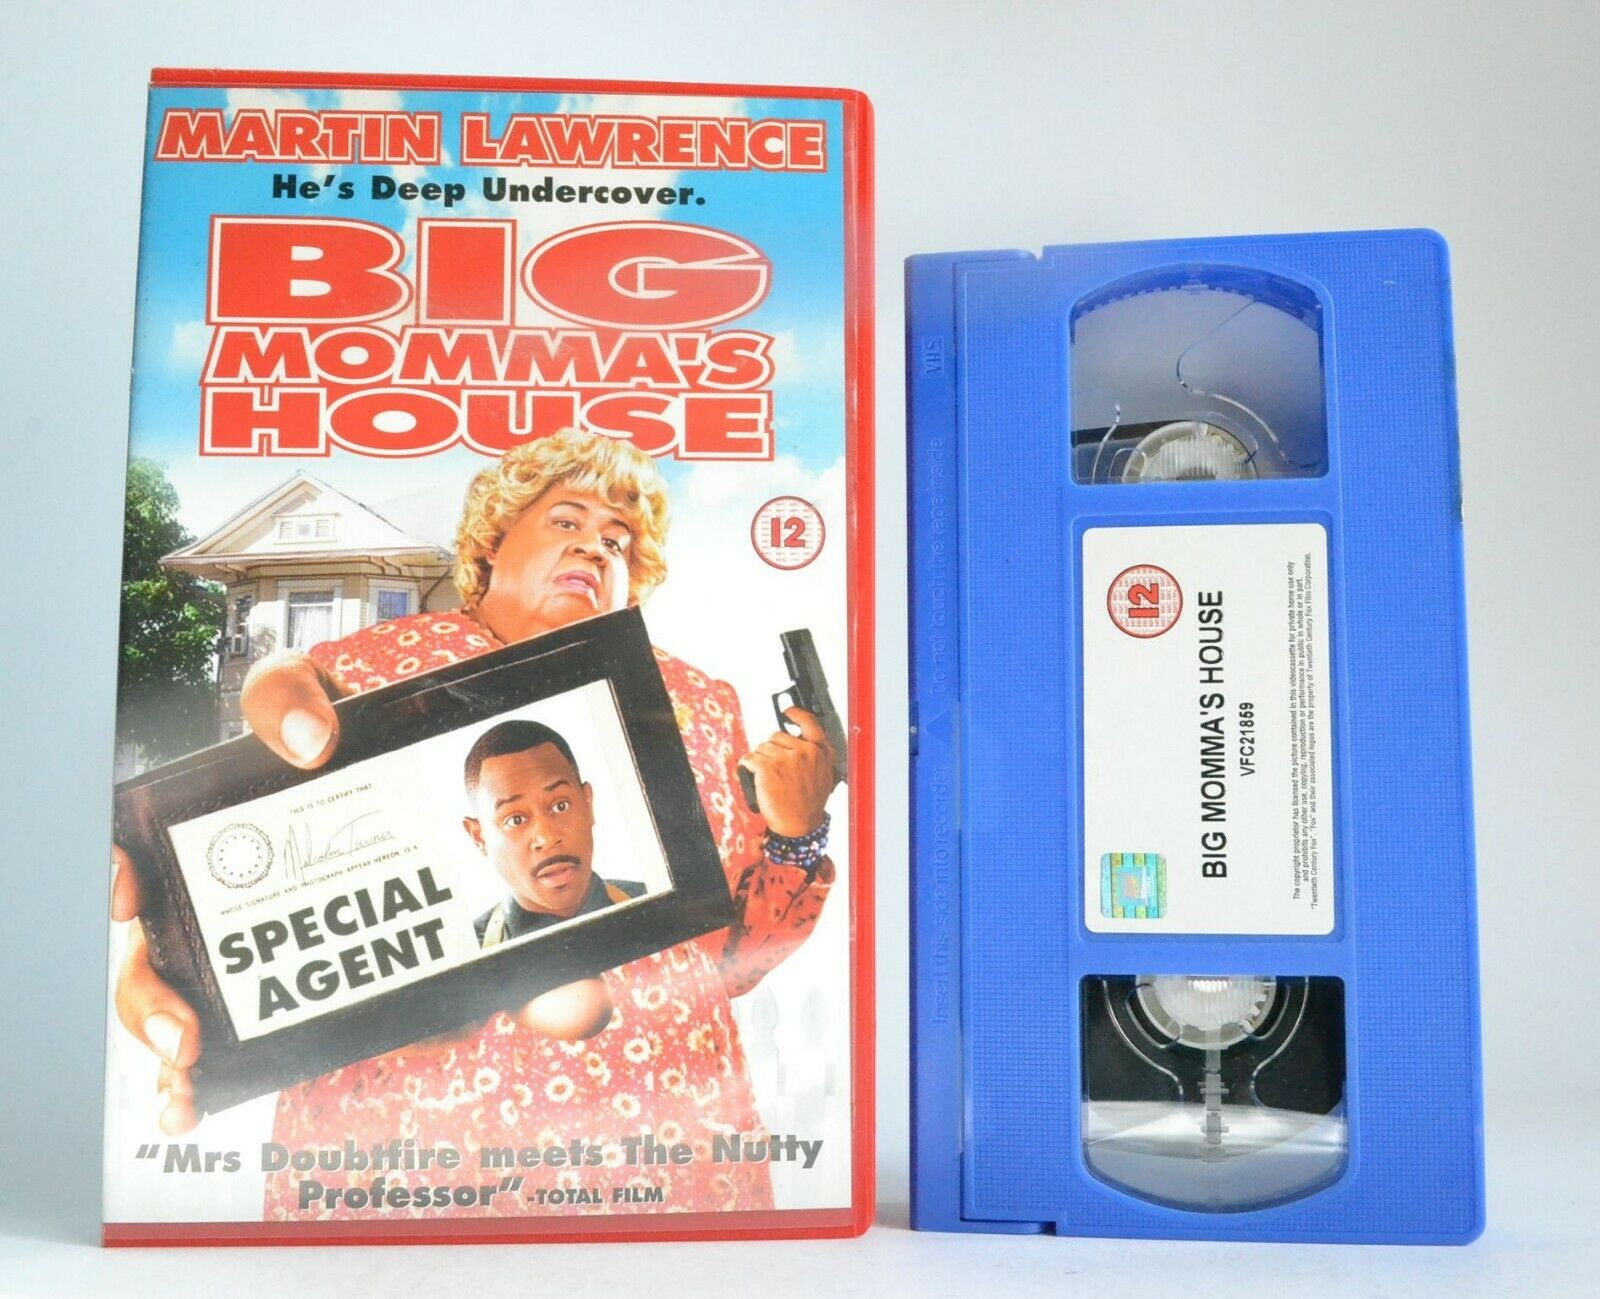 Big Momma's House: XXL California Action - Martin 'Bad Boy' Lawrence - Pal VHS